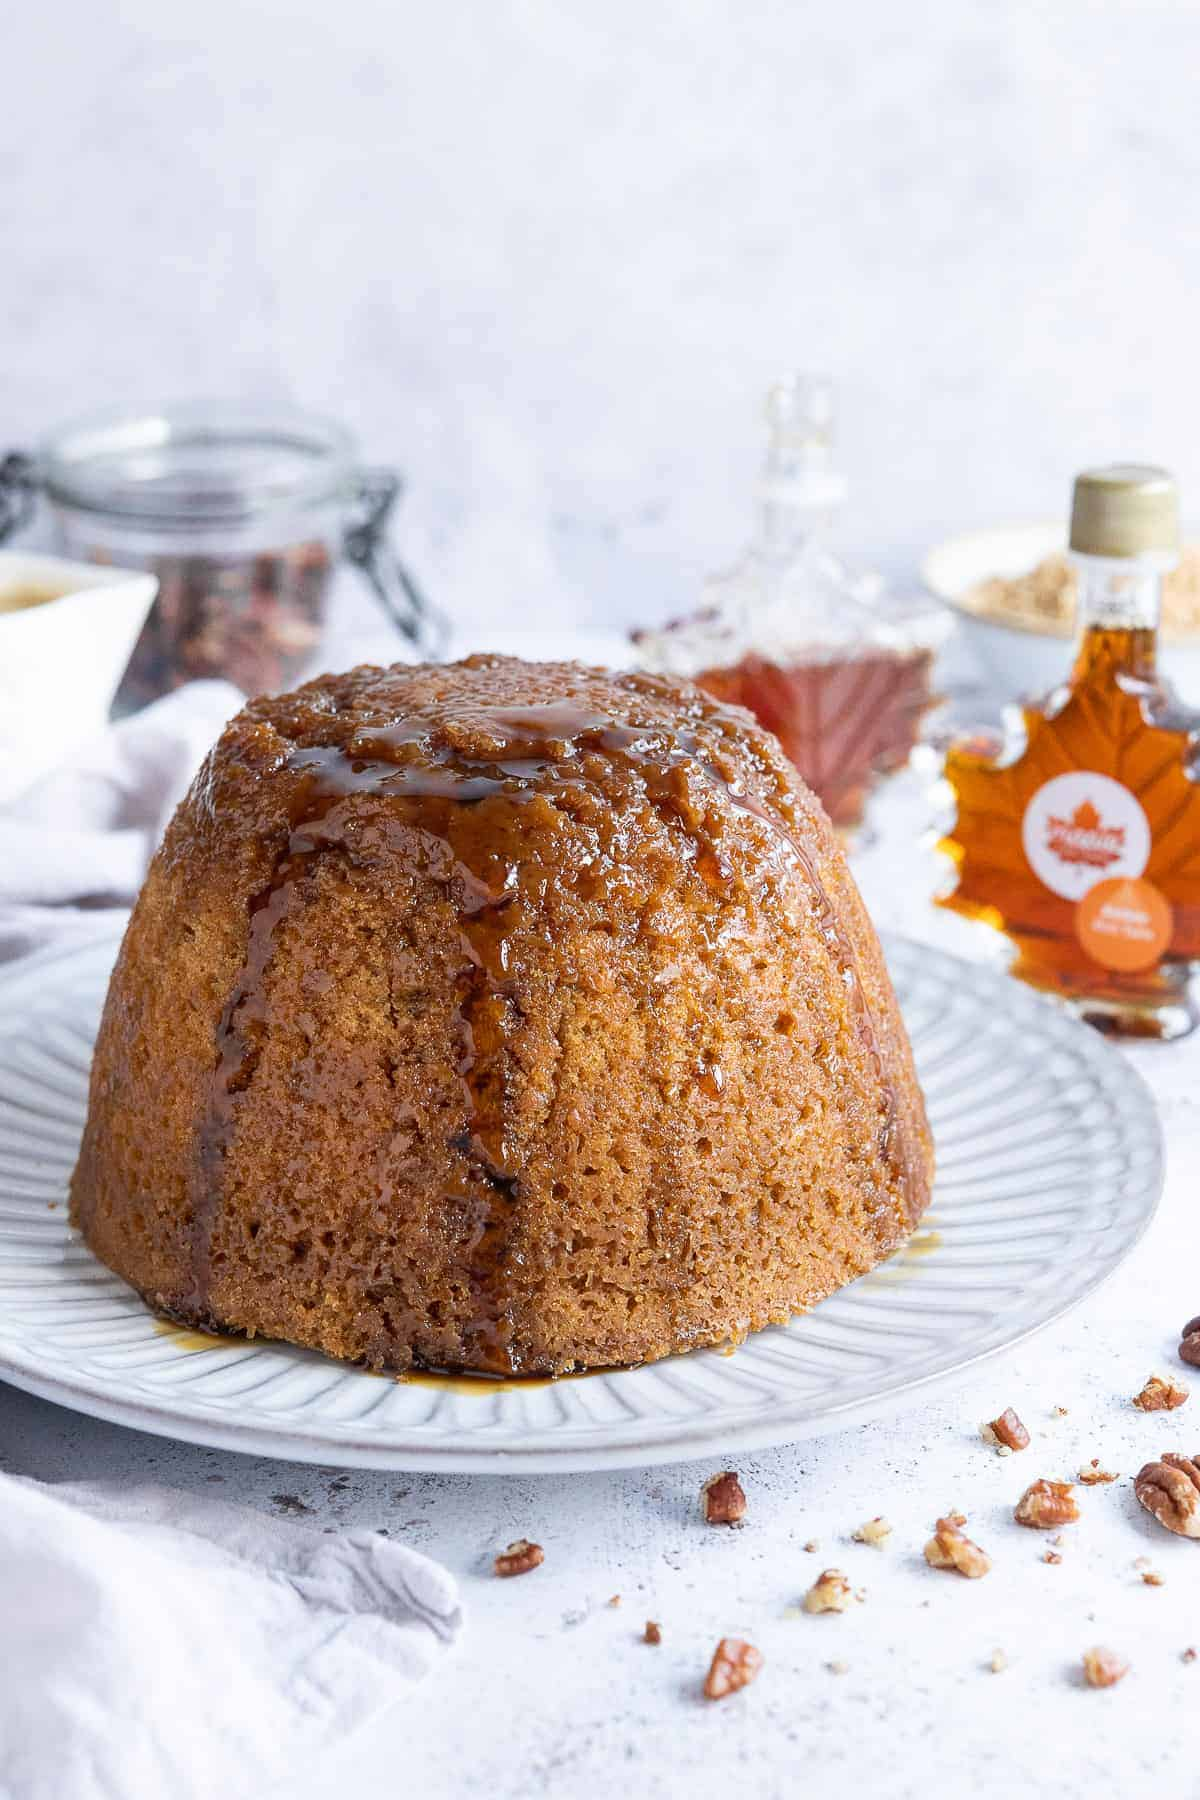 Vegan steamed maple syrup pudding on a white plate with bottles of maple syrup, a jug of custard and a jar on pecans in the background.